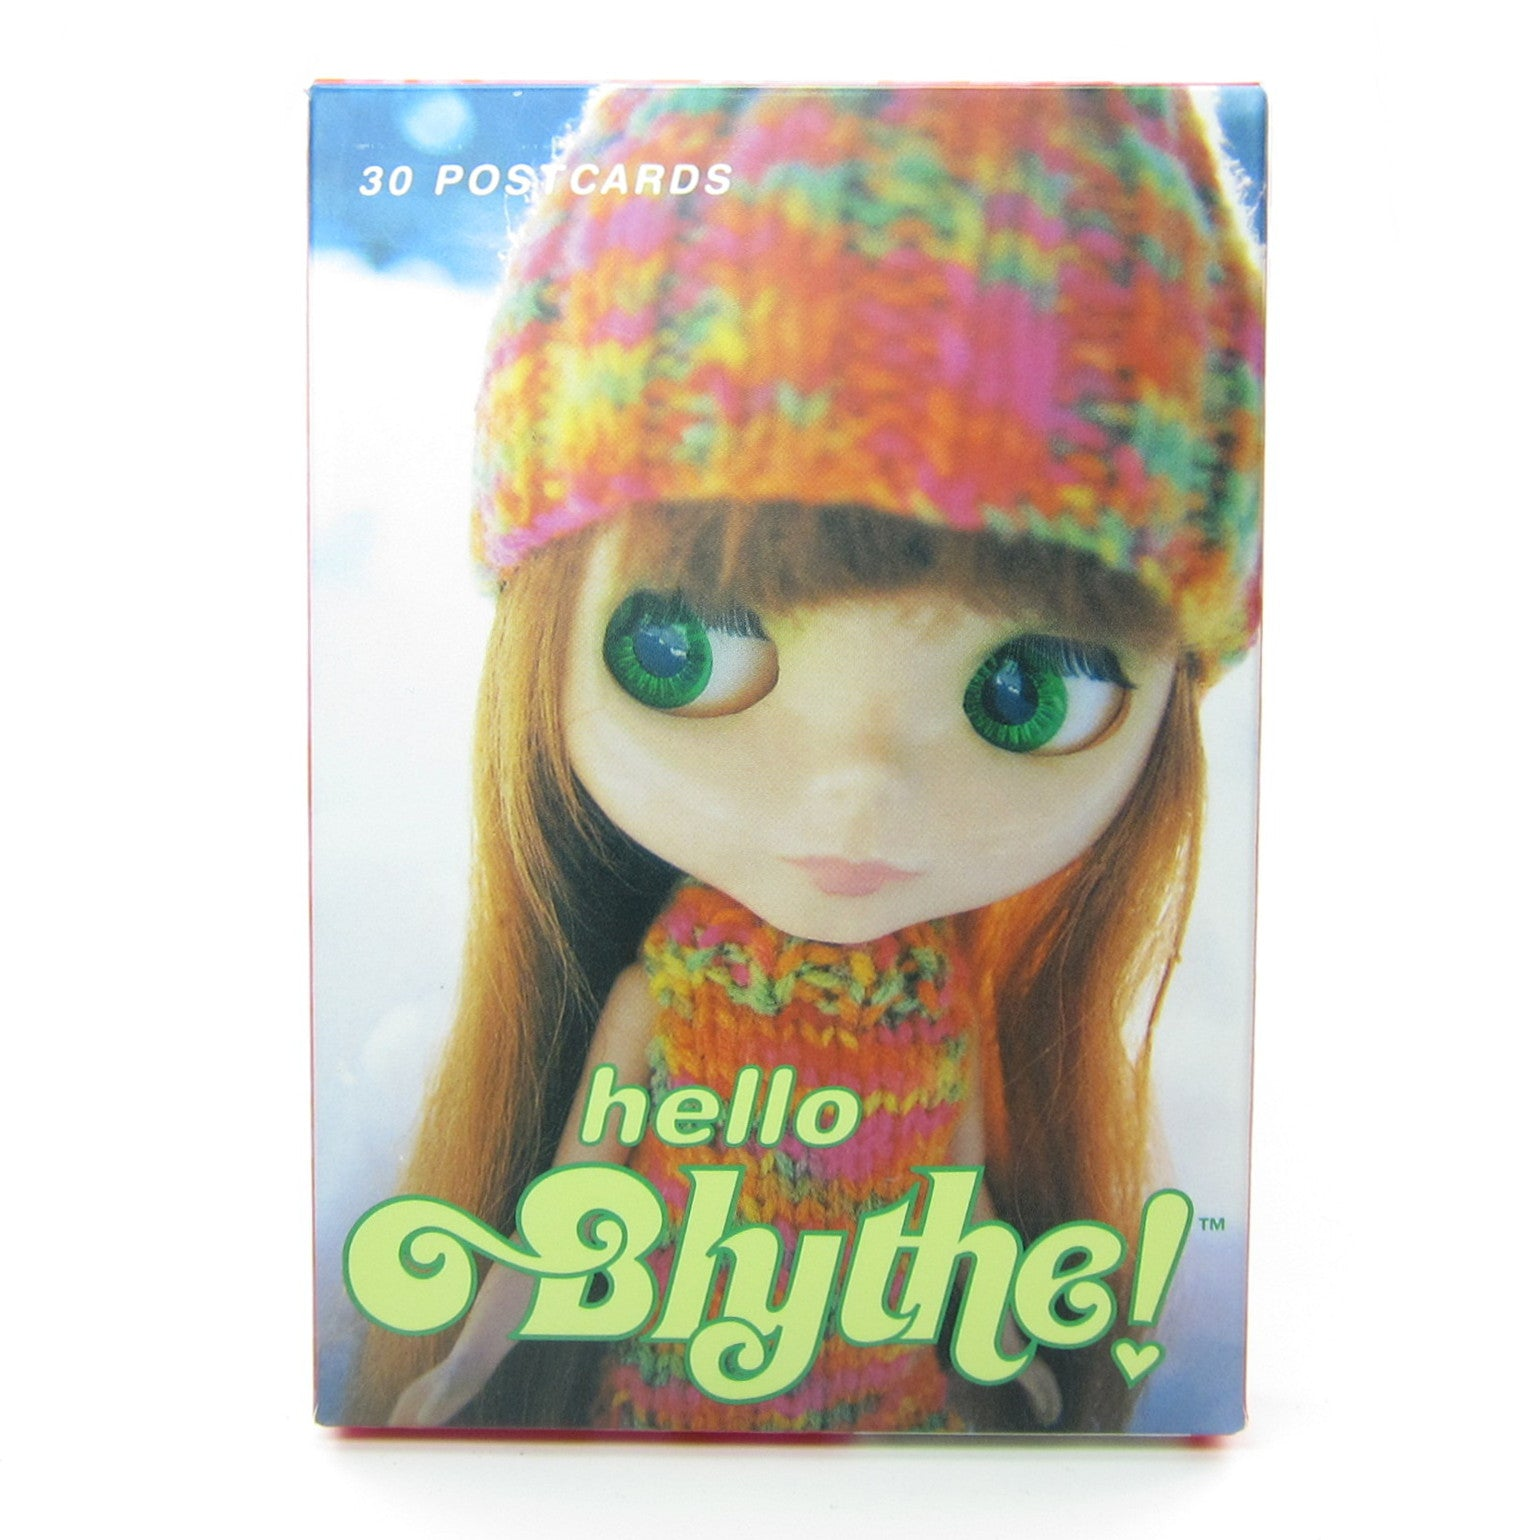 Hello Blythe 30 postcards boxed set with photographs by Gina Garan